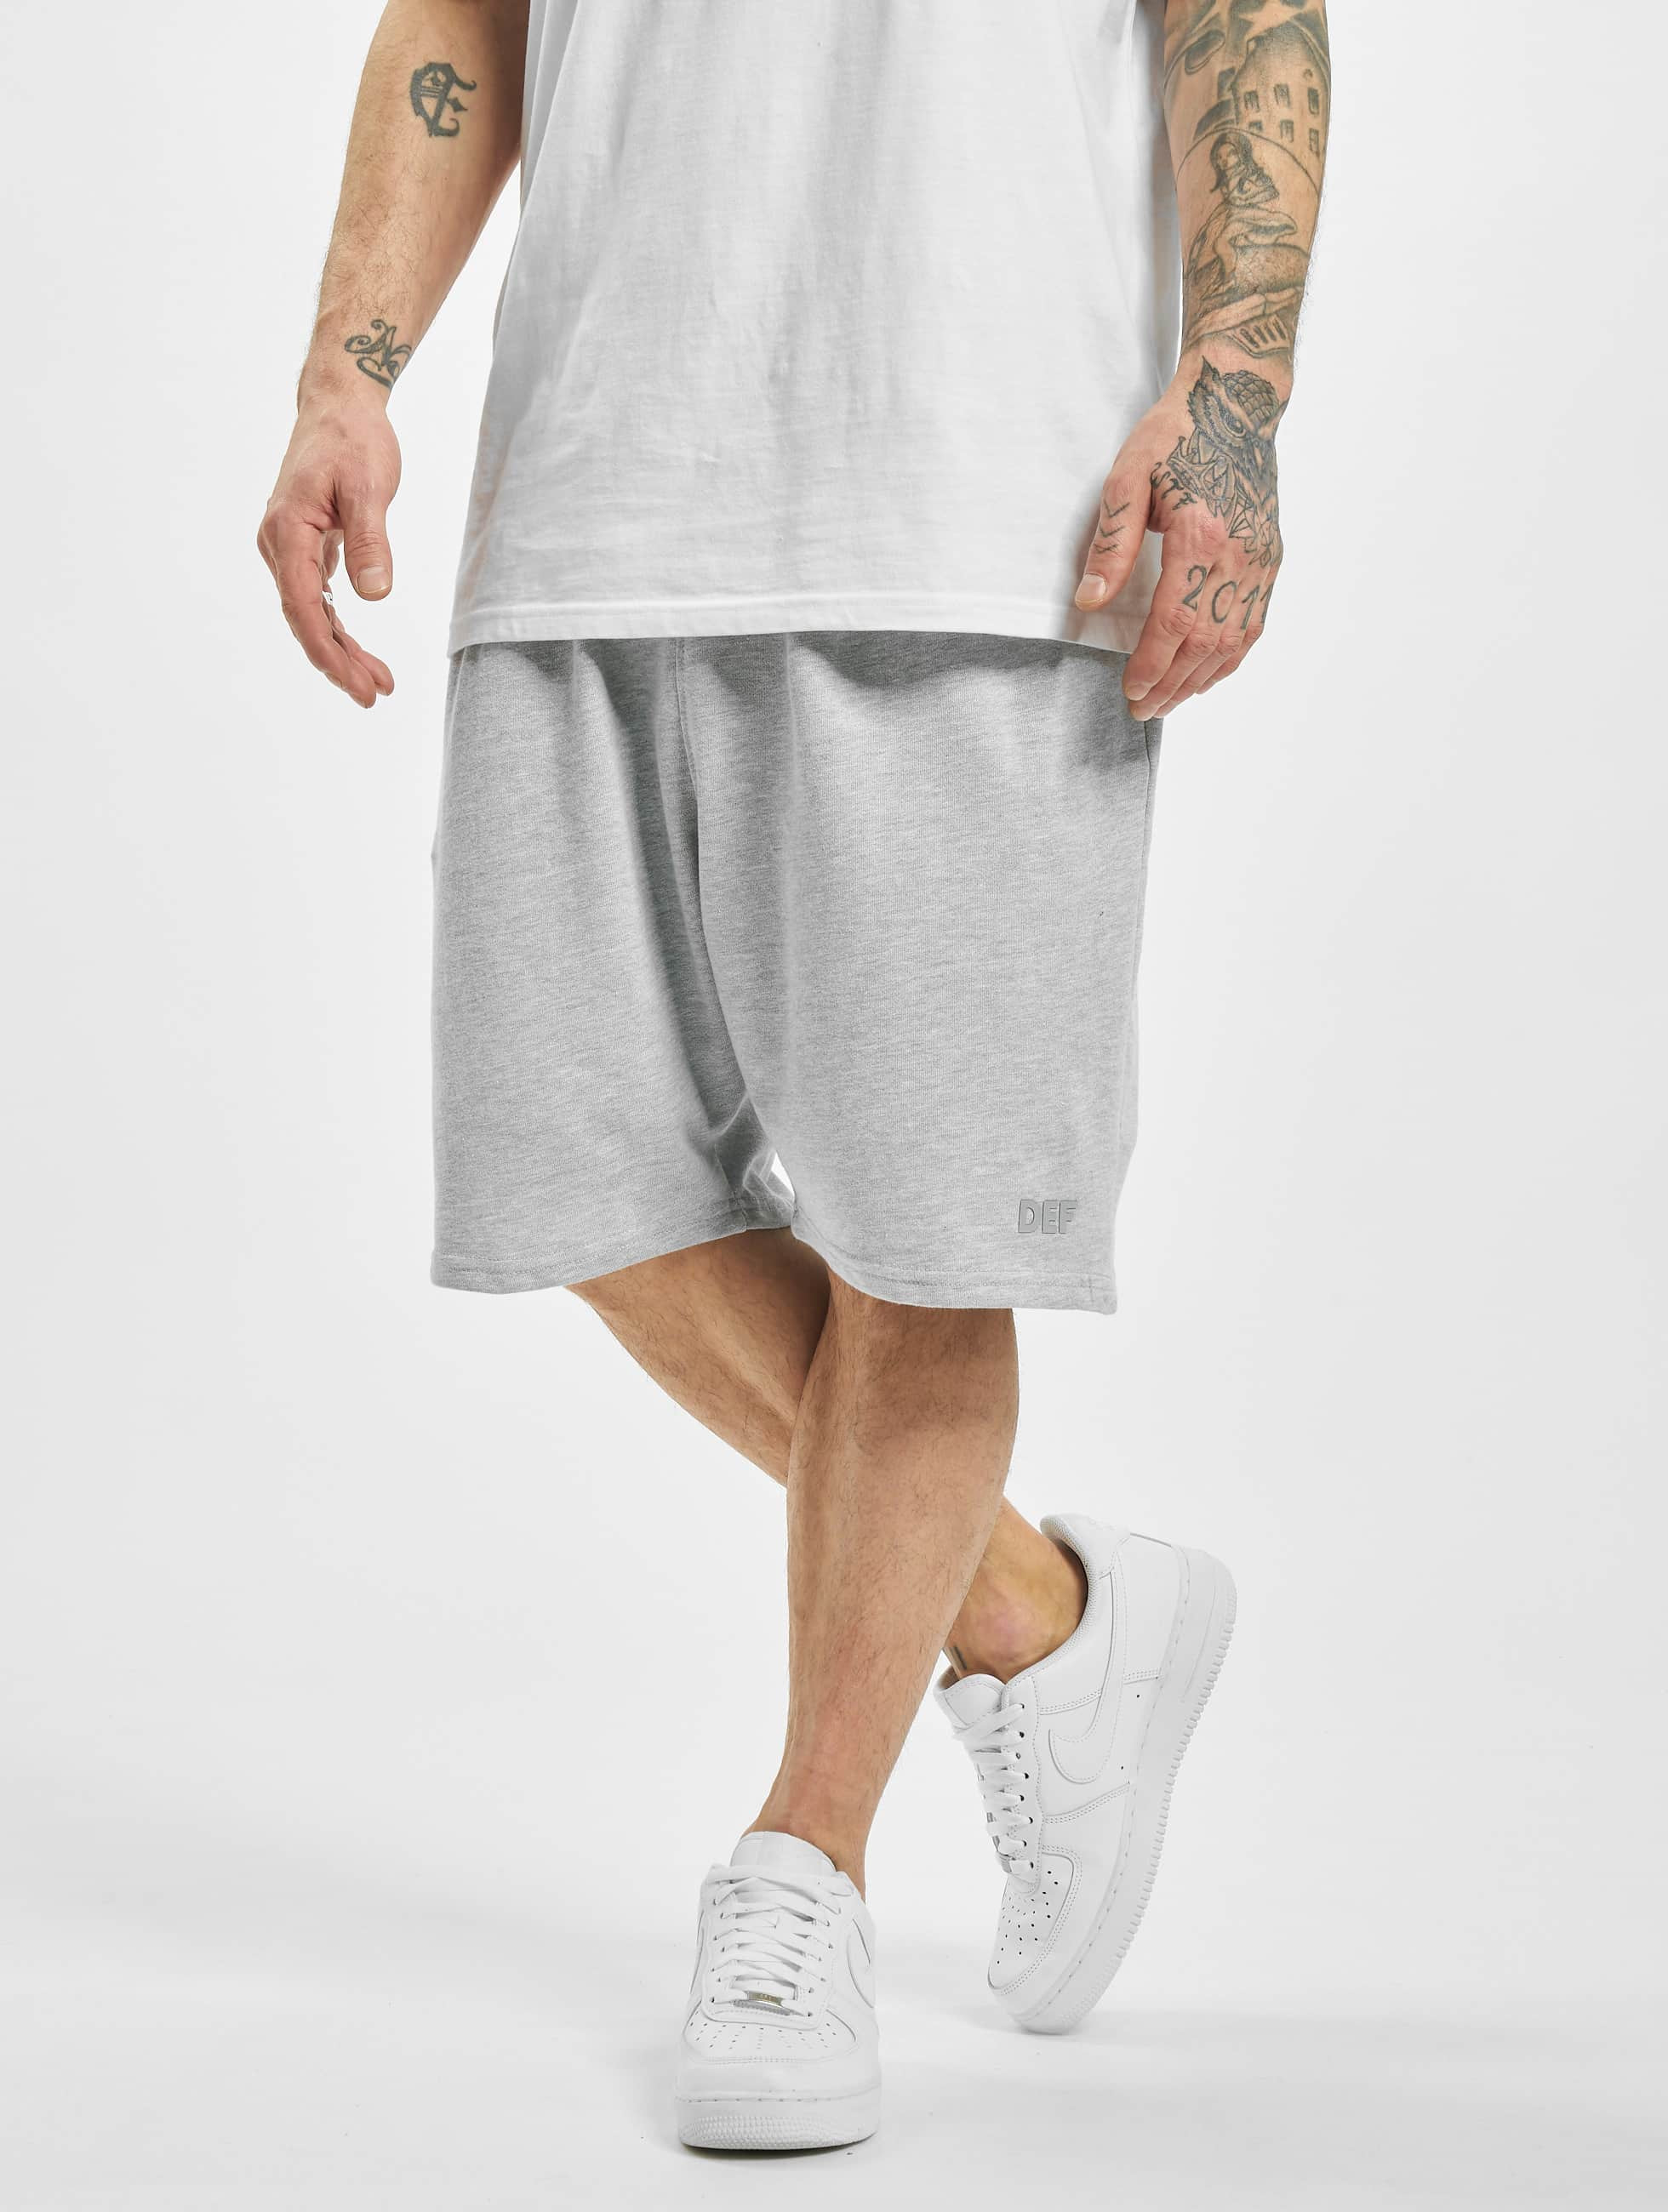 DEF / Short Bobi in grey S